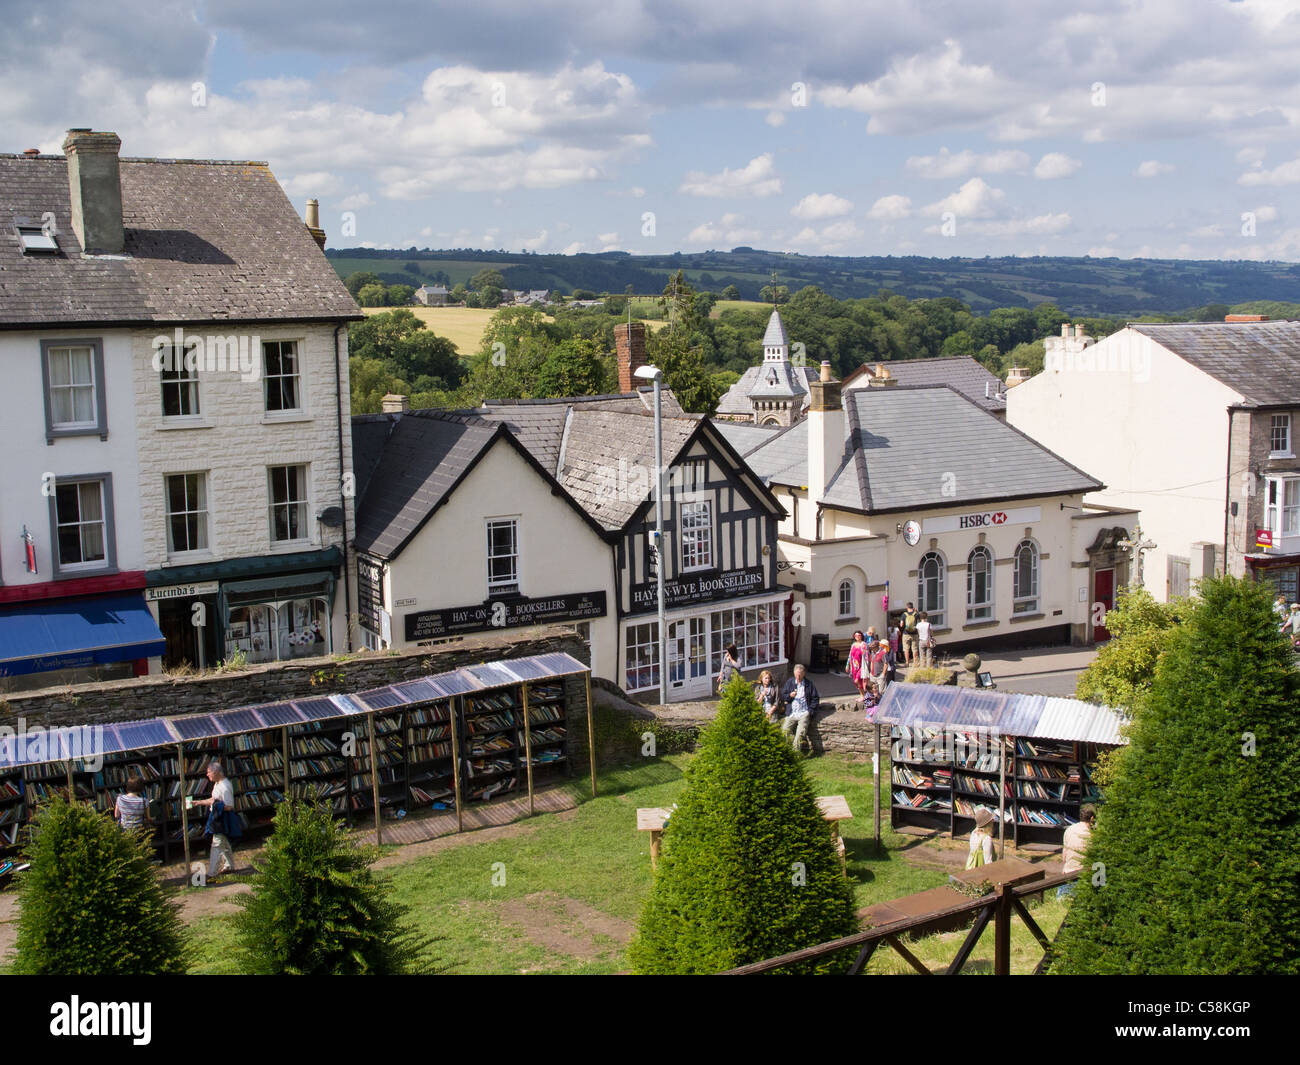 Hay-on-Wye on the Welsh border is famous for its book shops and the literary festival - Stock Image